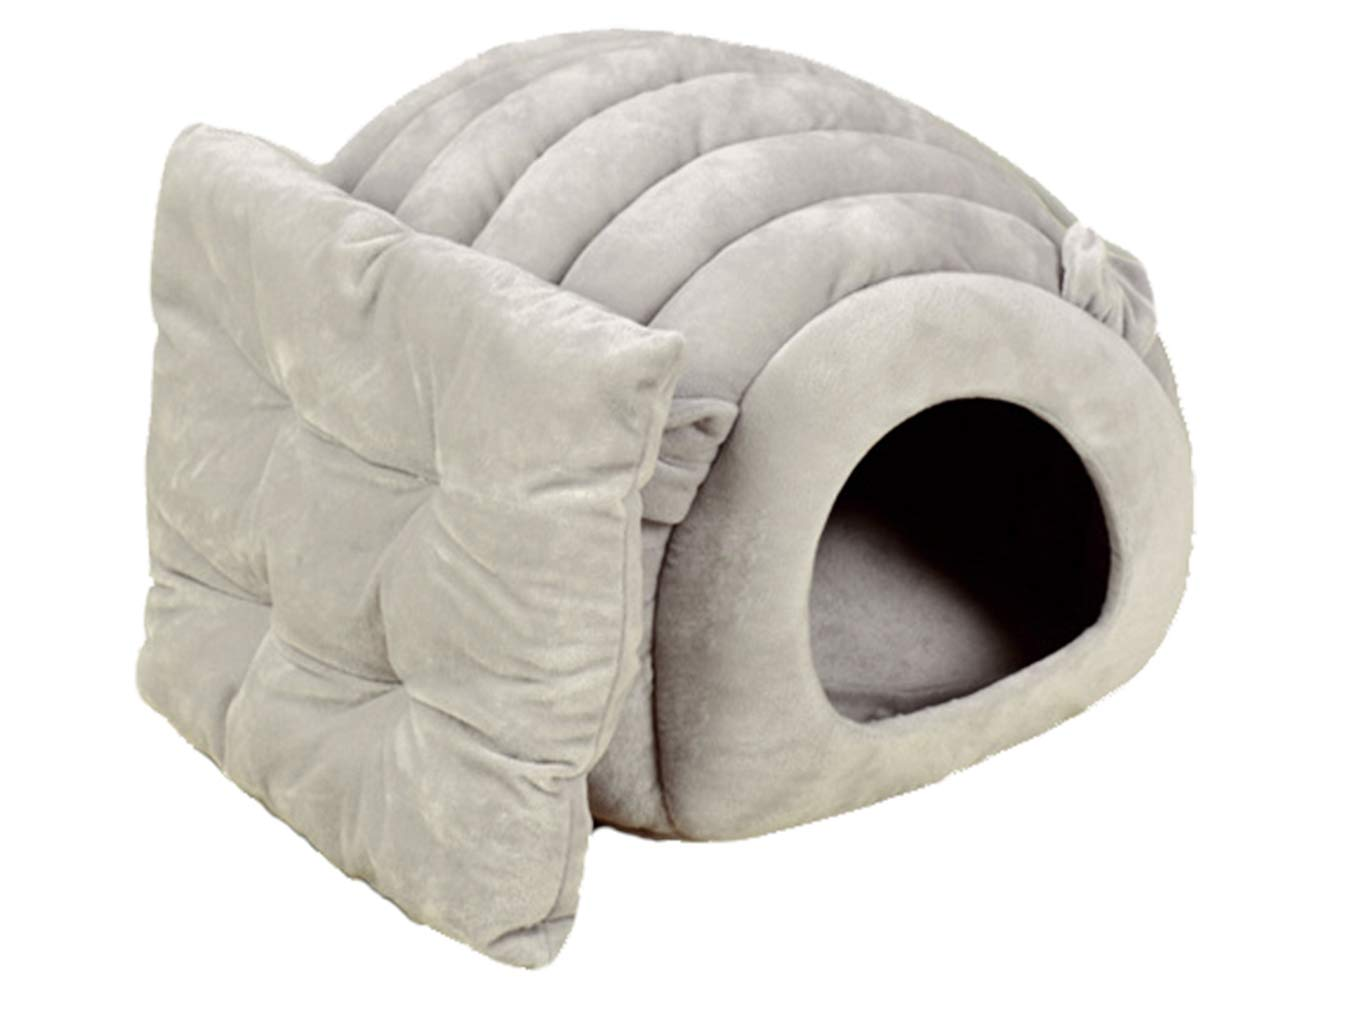 Beskie Pet Tent Cave Bed for Small Medium Large Dogs Cats Pets Puppy Removable Cushion Sleeping Bag Warm Soft Dog Bed Cozy Grotto Cavern Cuddler Burrow House Hole Igloo Nest for Cat by Beskie